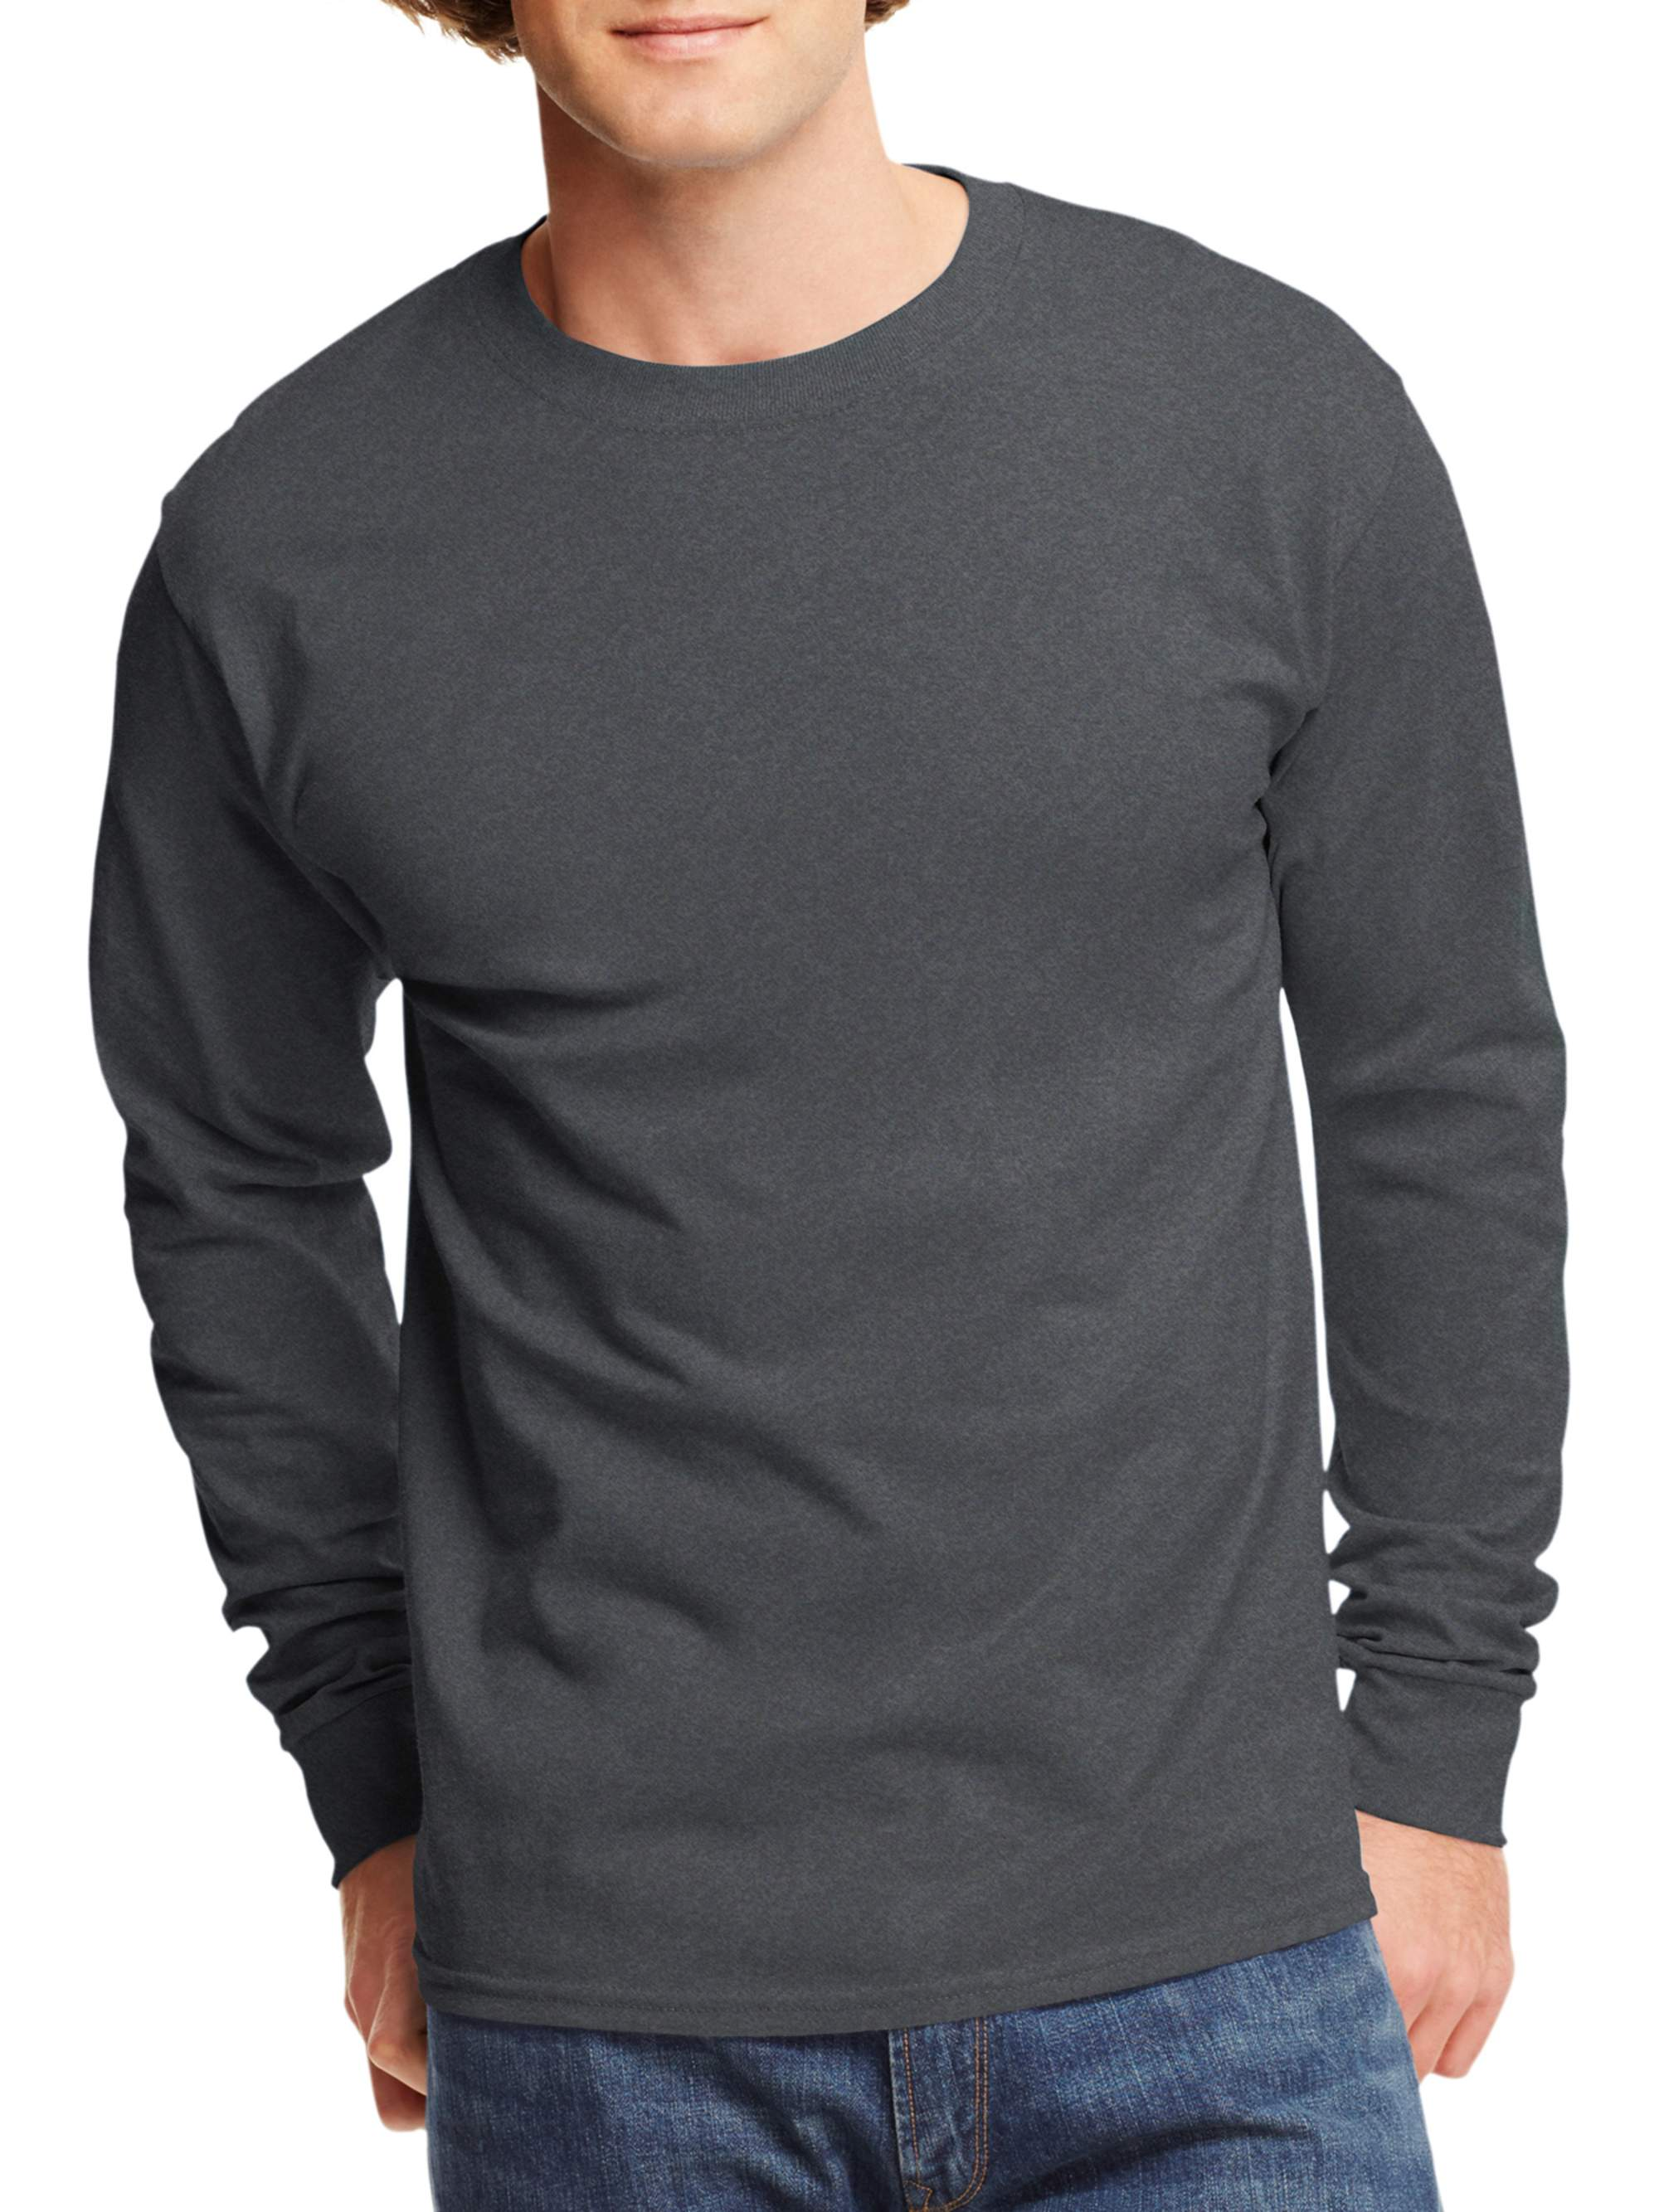 Attractive and elegant long sleeve t shirt